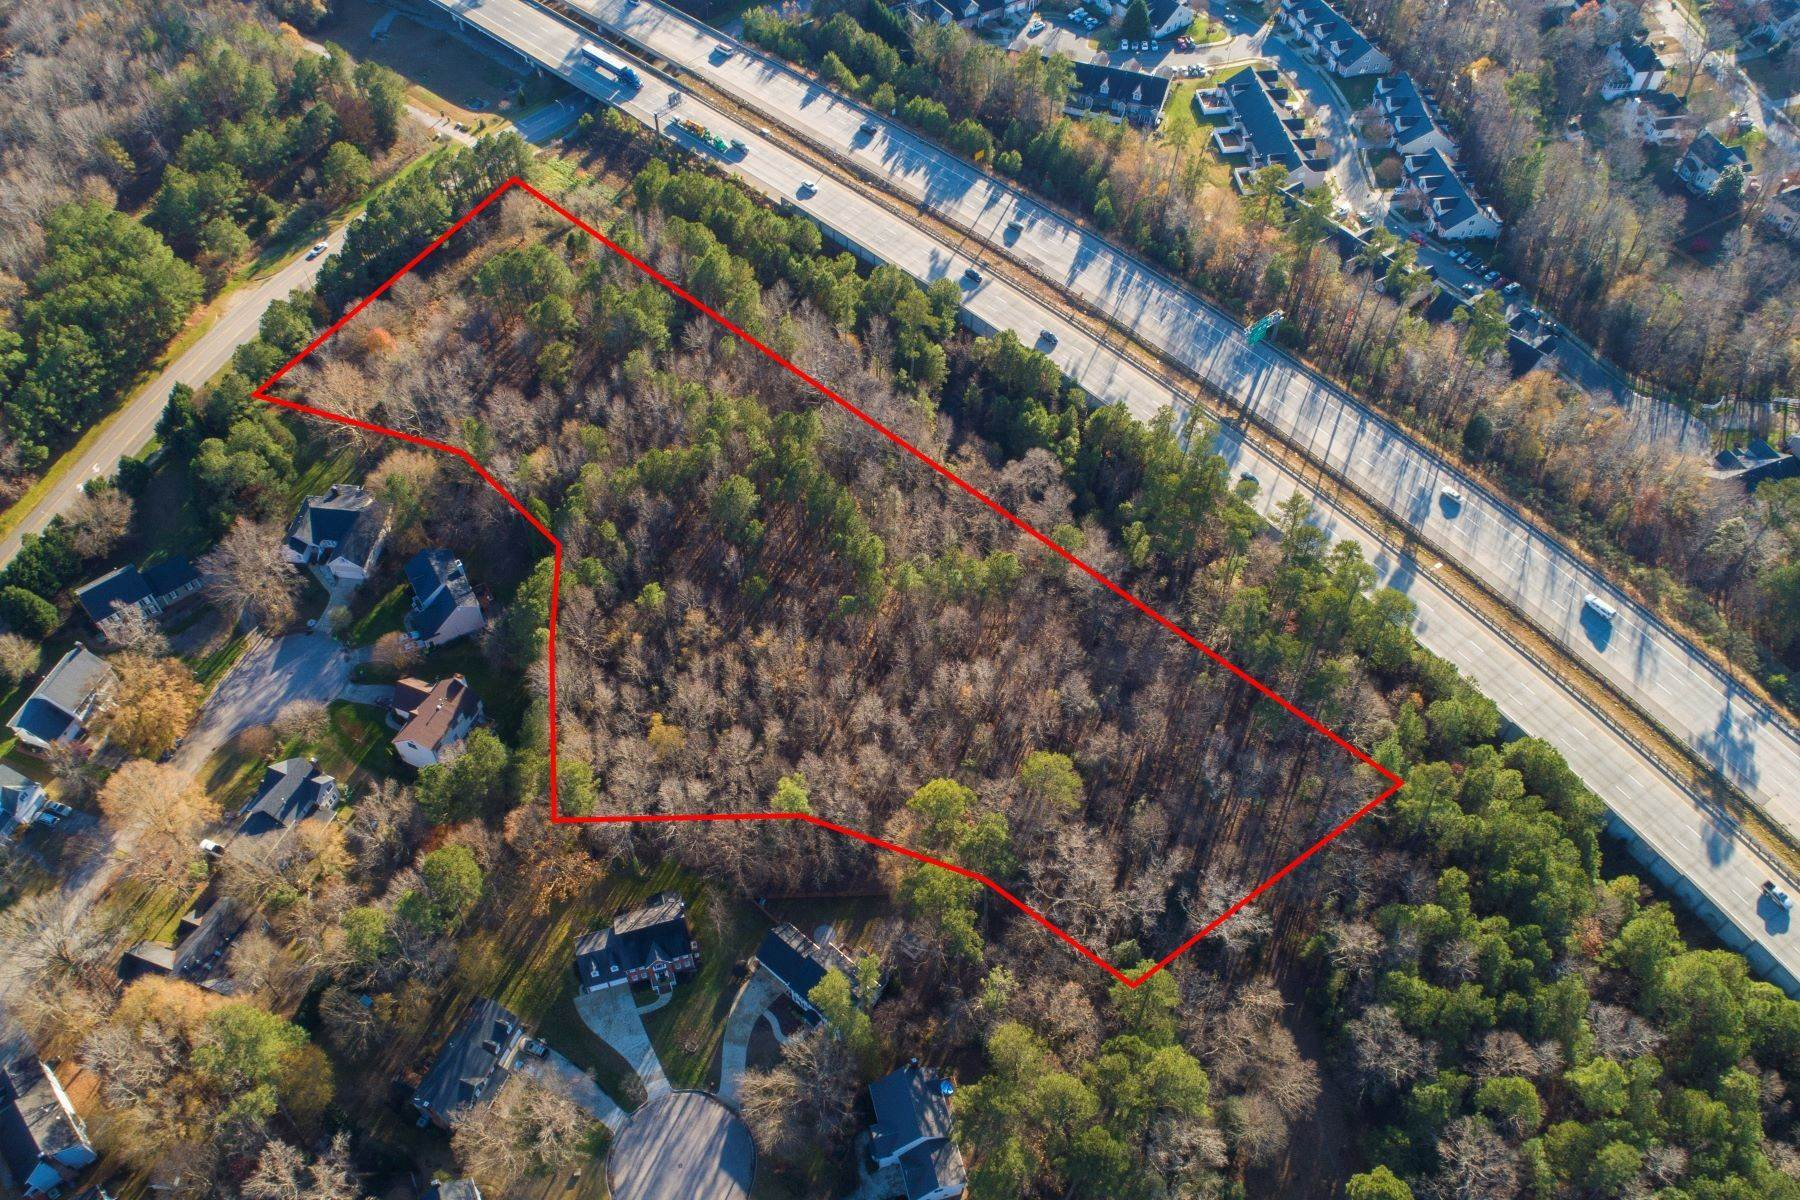 2. Land for Sale at 0 Lynnwood Road Knightdale NC 0 Lynnwood Road Knightdale, North Carolina 27545 United States